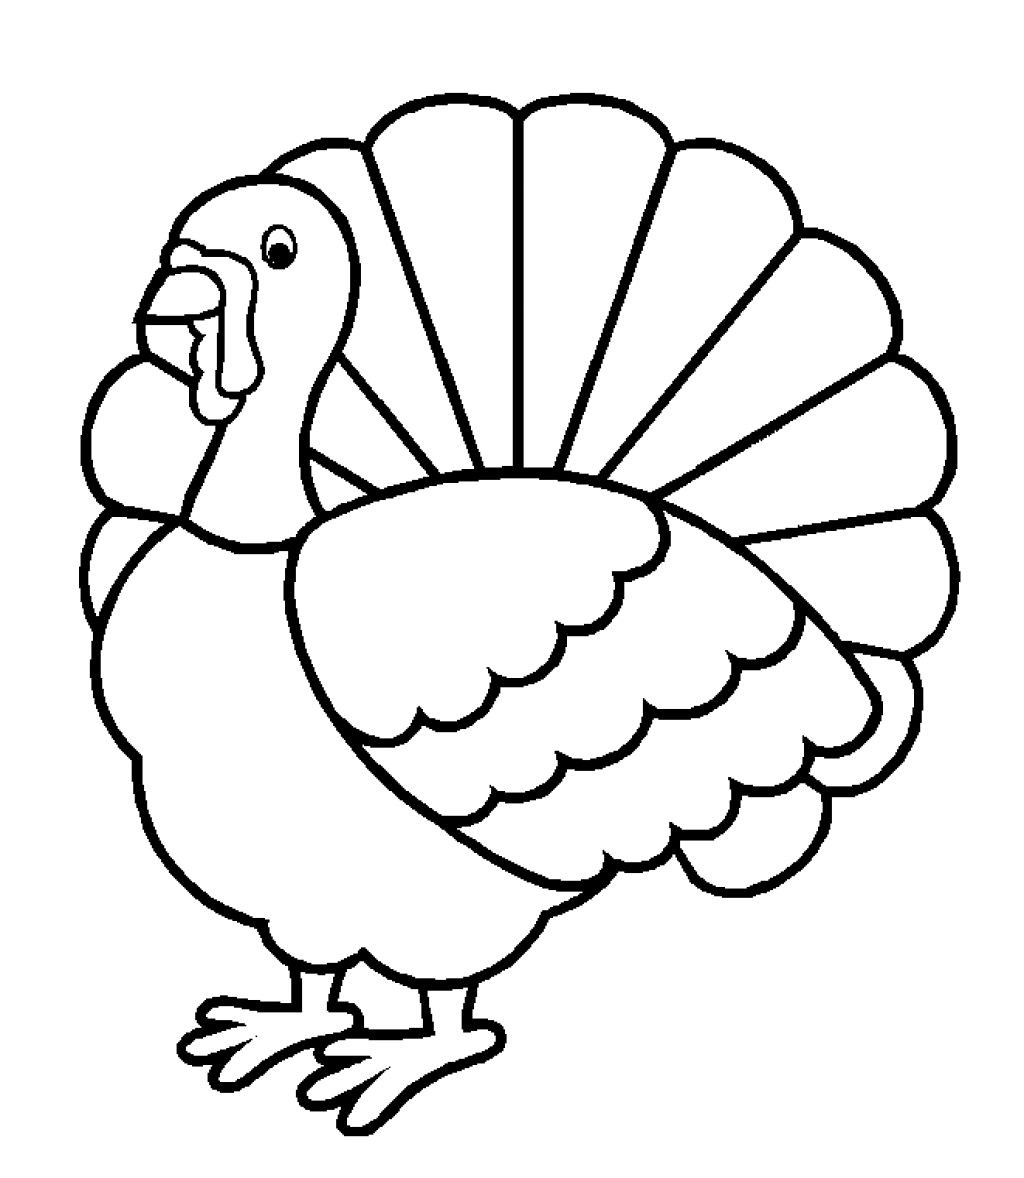 Turkey Outline | Free download on ClipArtMag